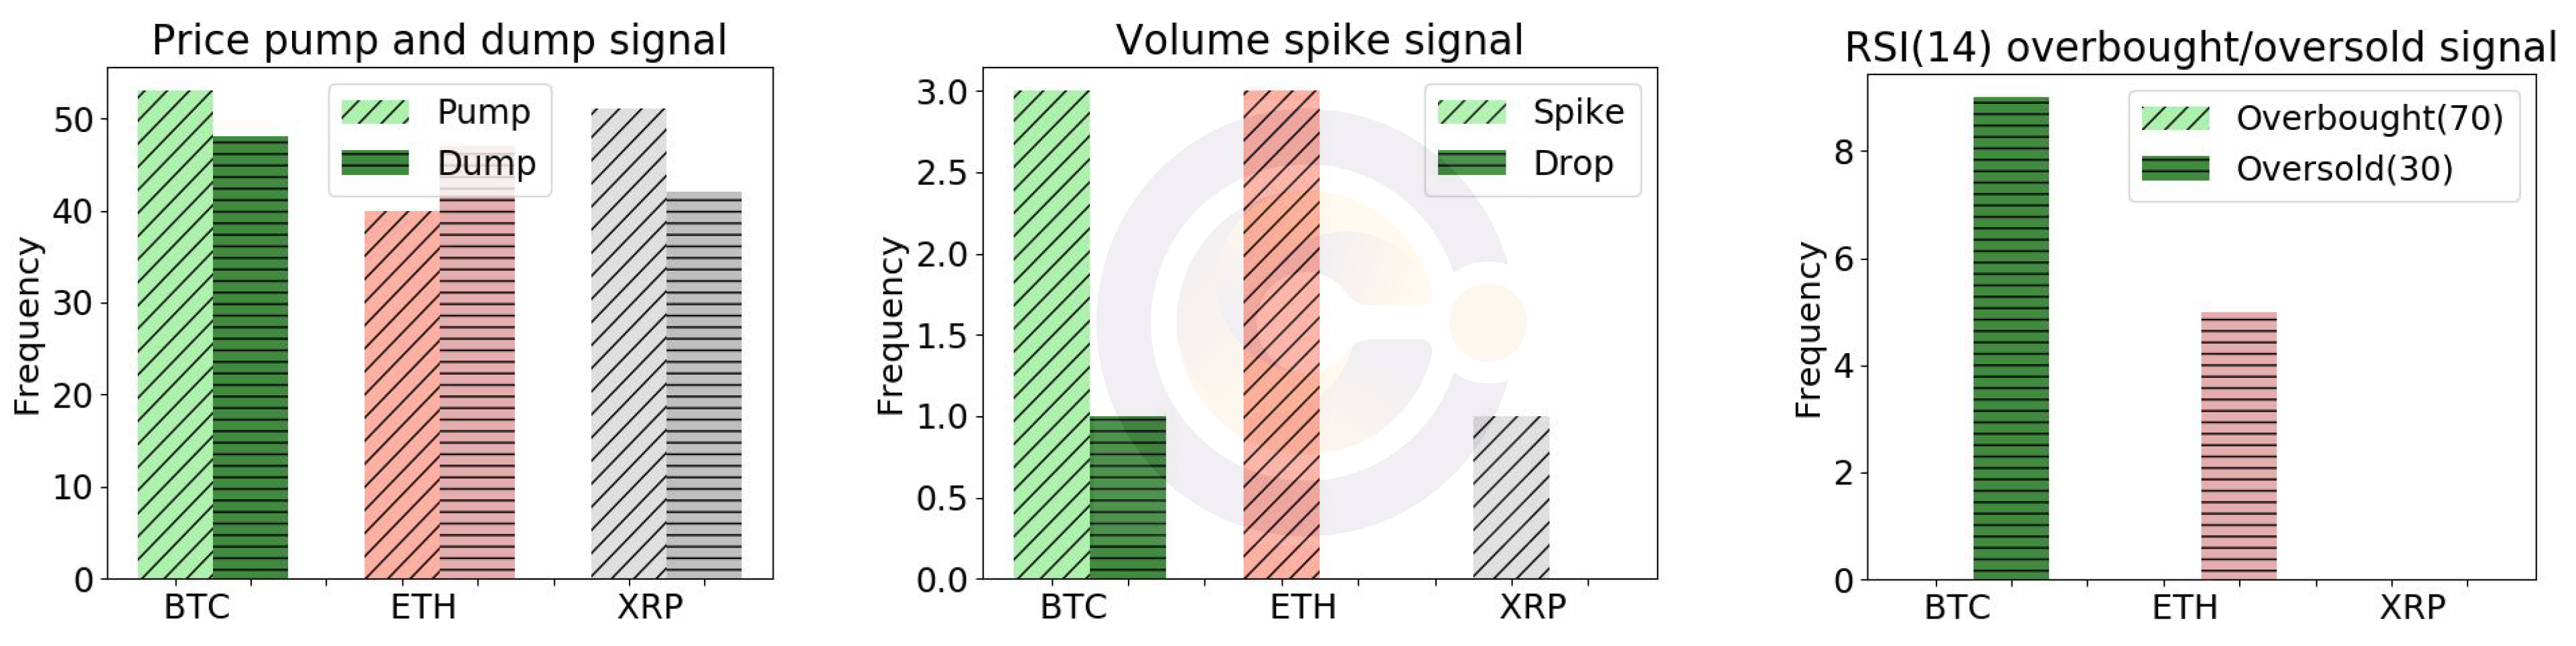 Blockchain - Price pump and dump signals, volume spike signals, and RSI (14) signals at Bitstamp for BTC/USD, ETH/USD and XRP/USD between June 1 to June 30, 2019.